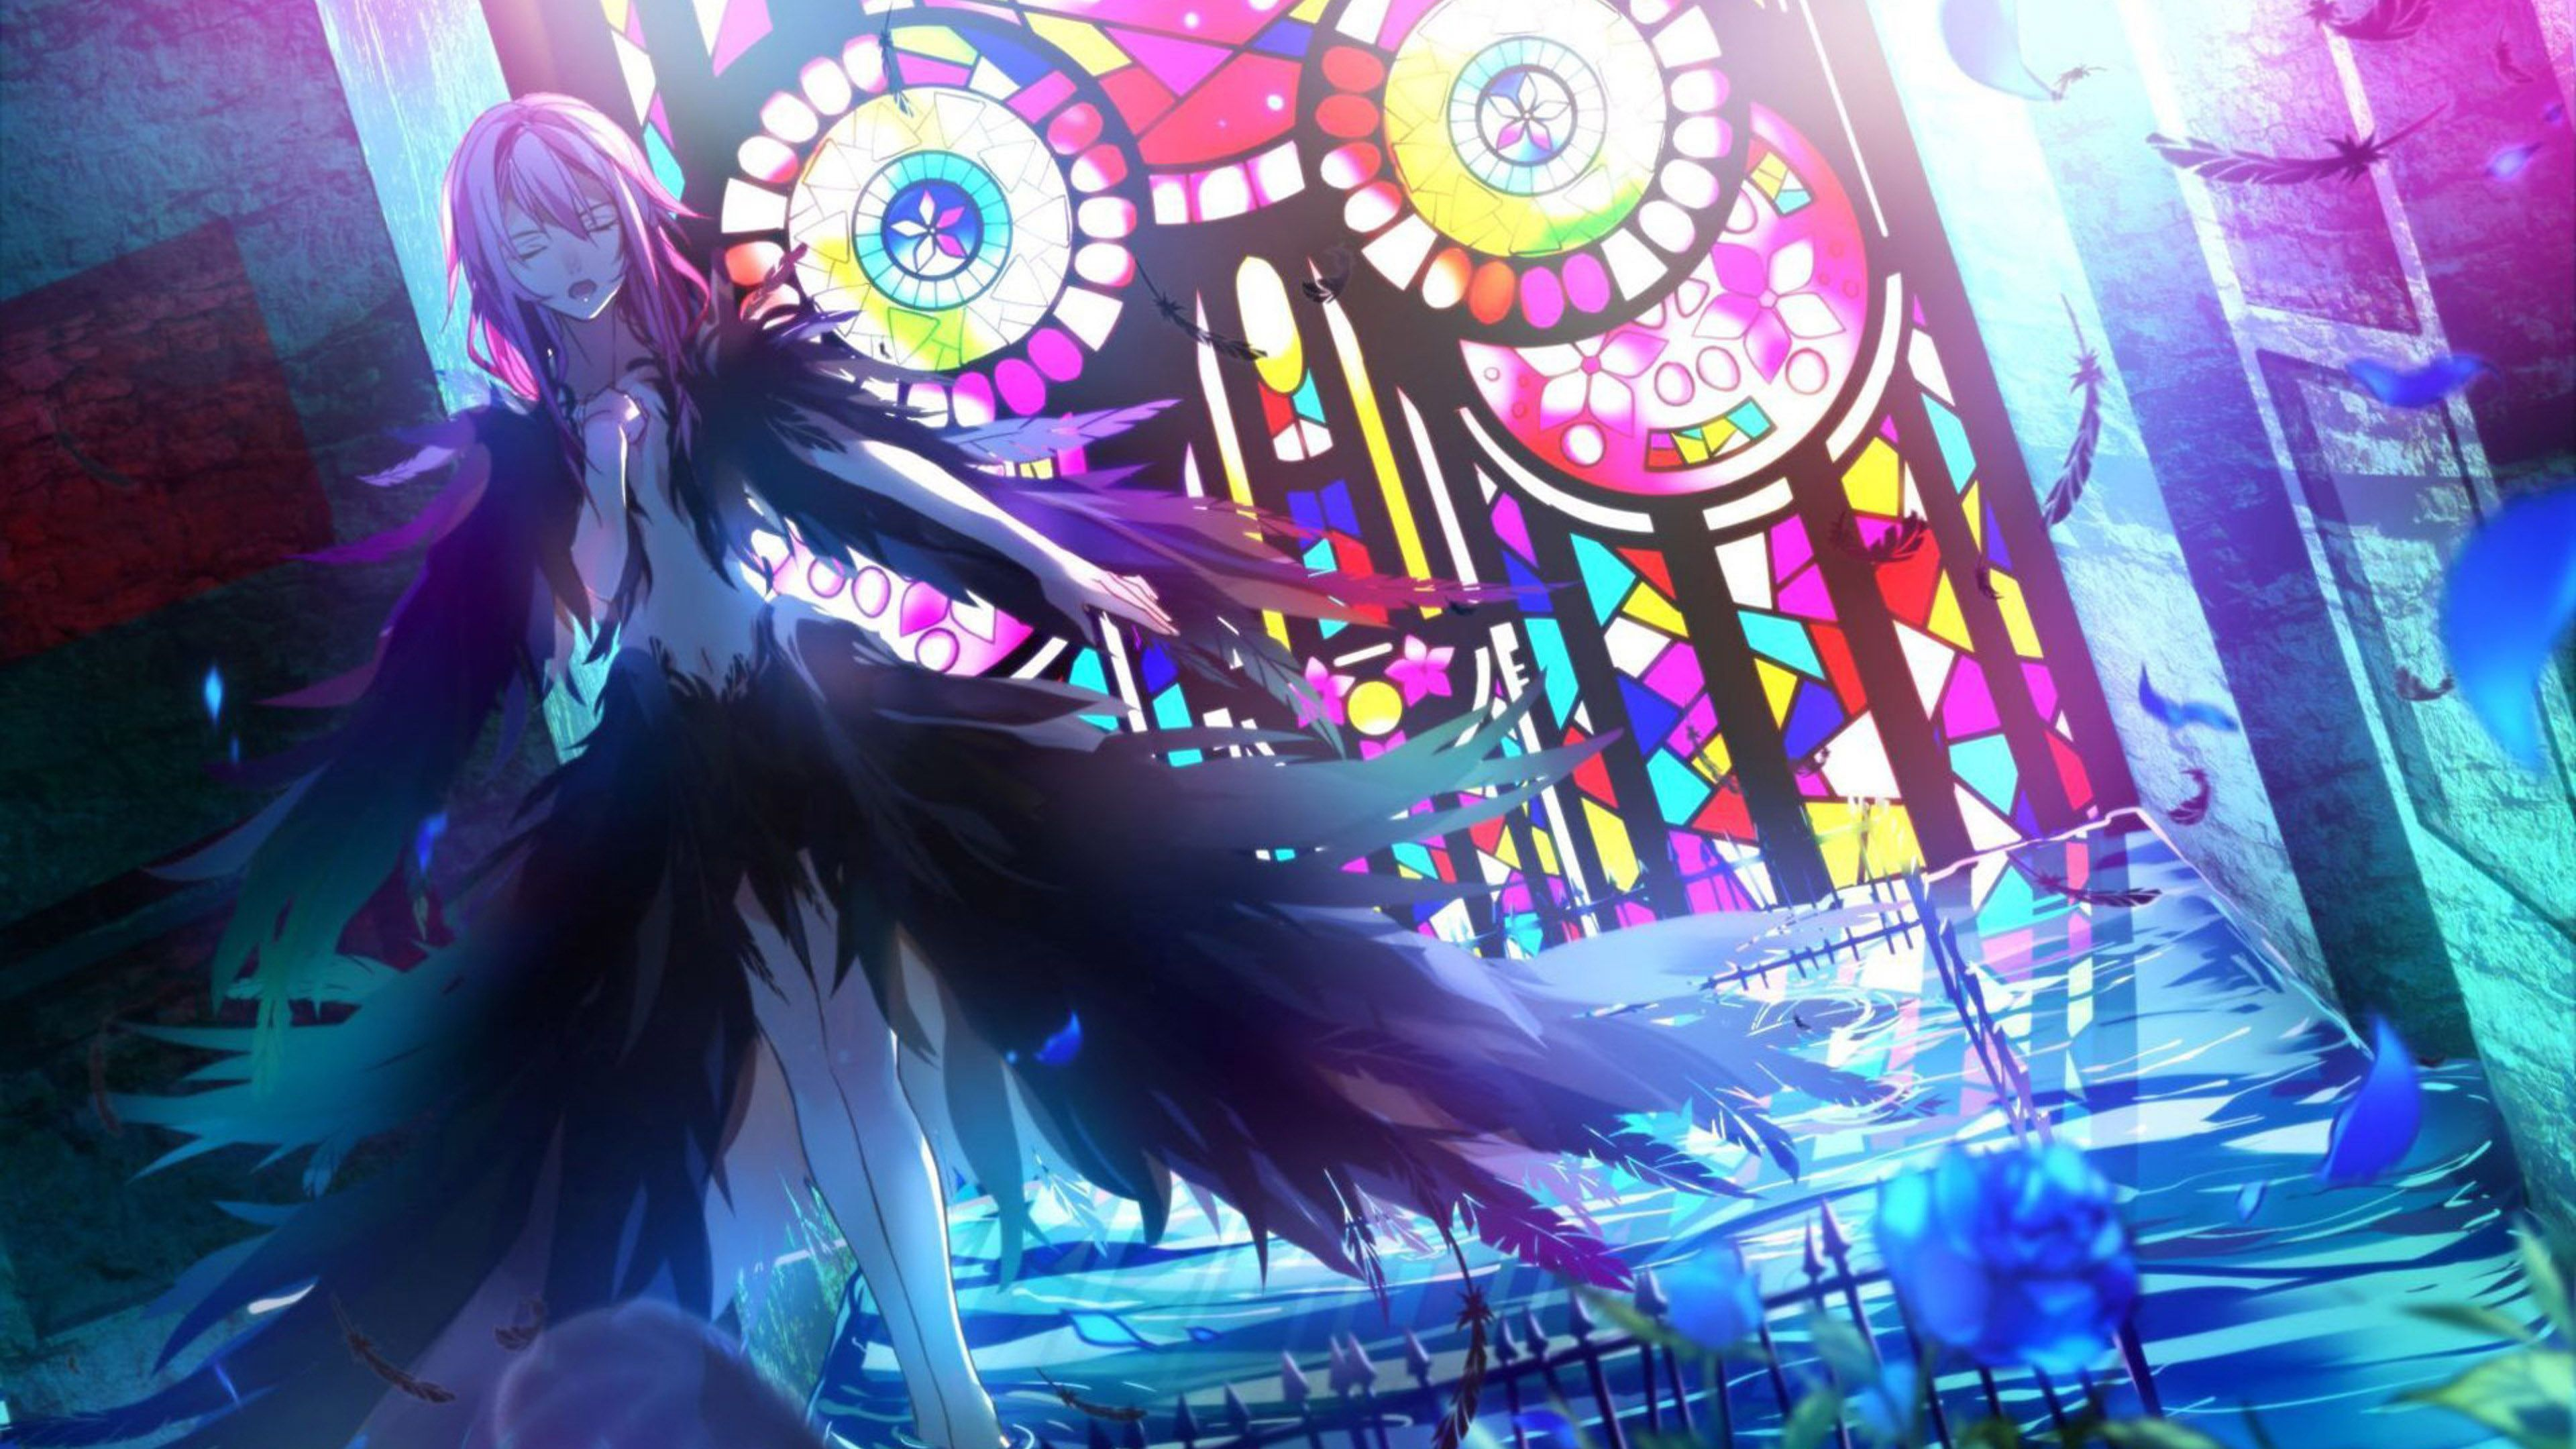 Guilty Crown Guilty crown wallpapers, Anime, Inori yuzuriha